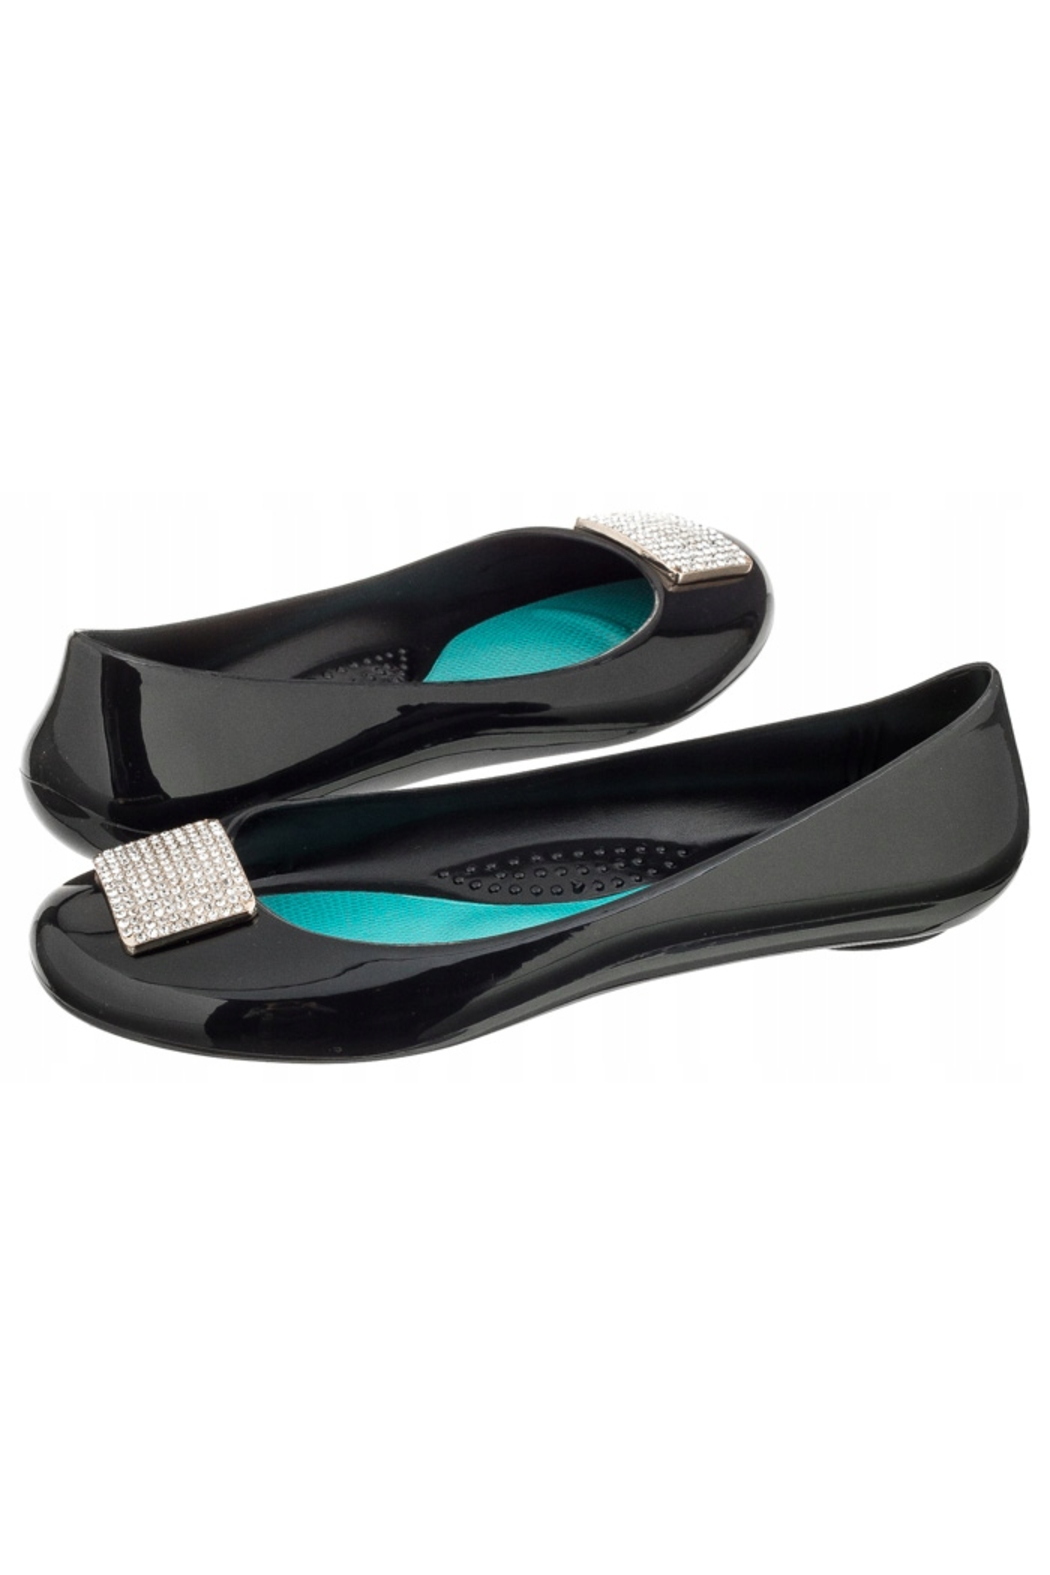 The Birds Nest VICTORIA BALLET FLATS-LICORICE SZ 7 - Front Cropped Image